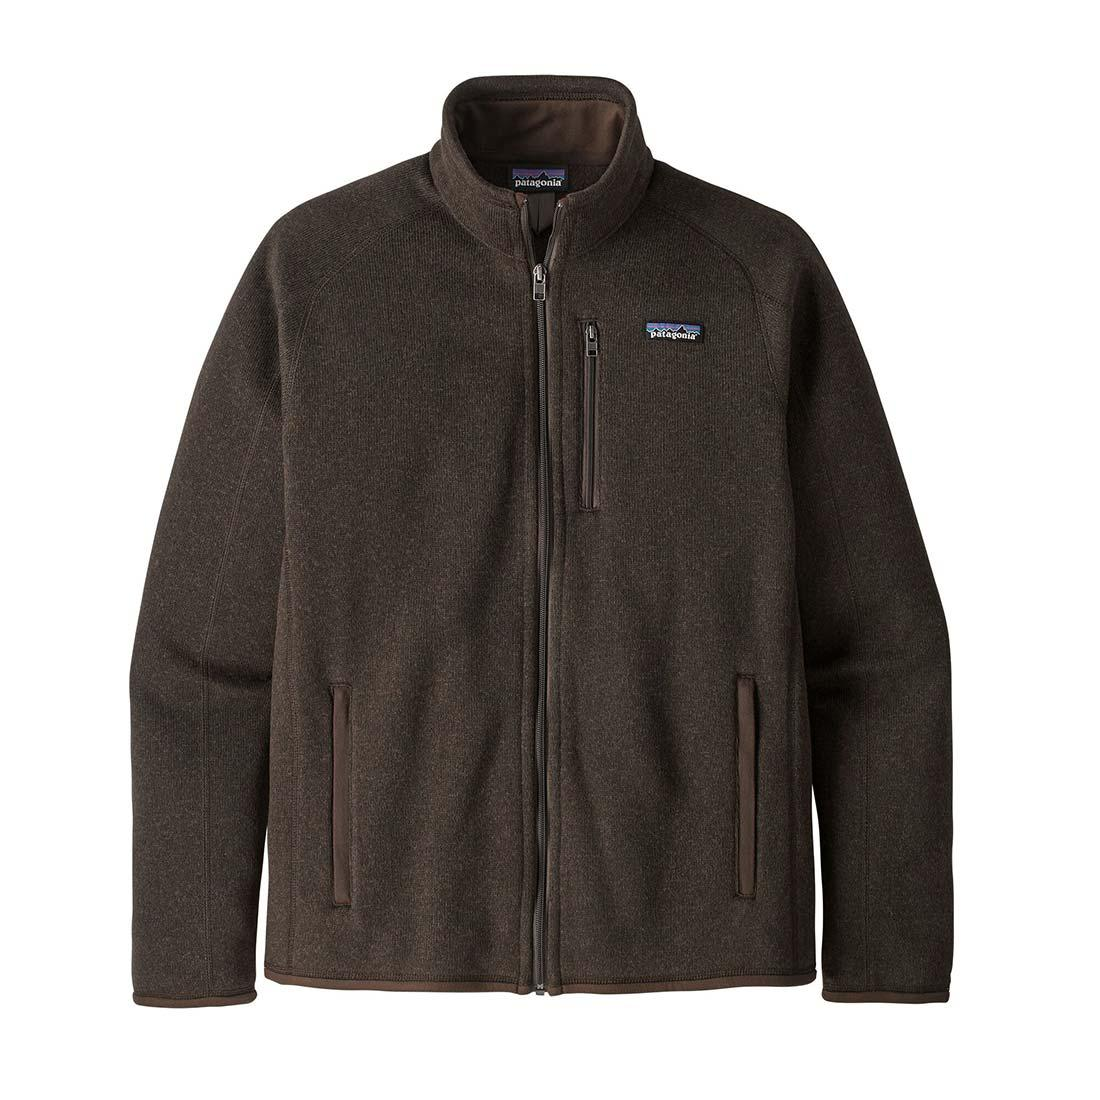 Patagonia Better Sweater Jacket - Logwood Brown